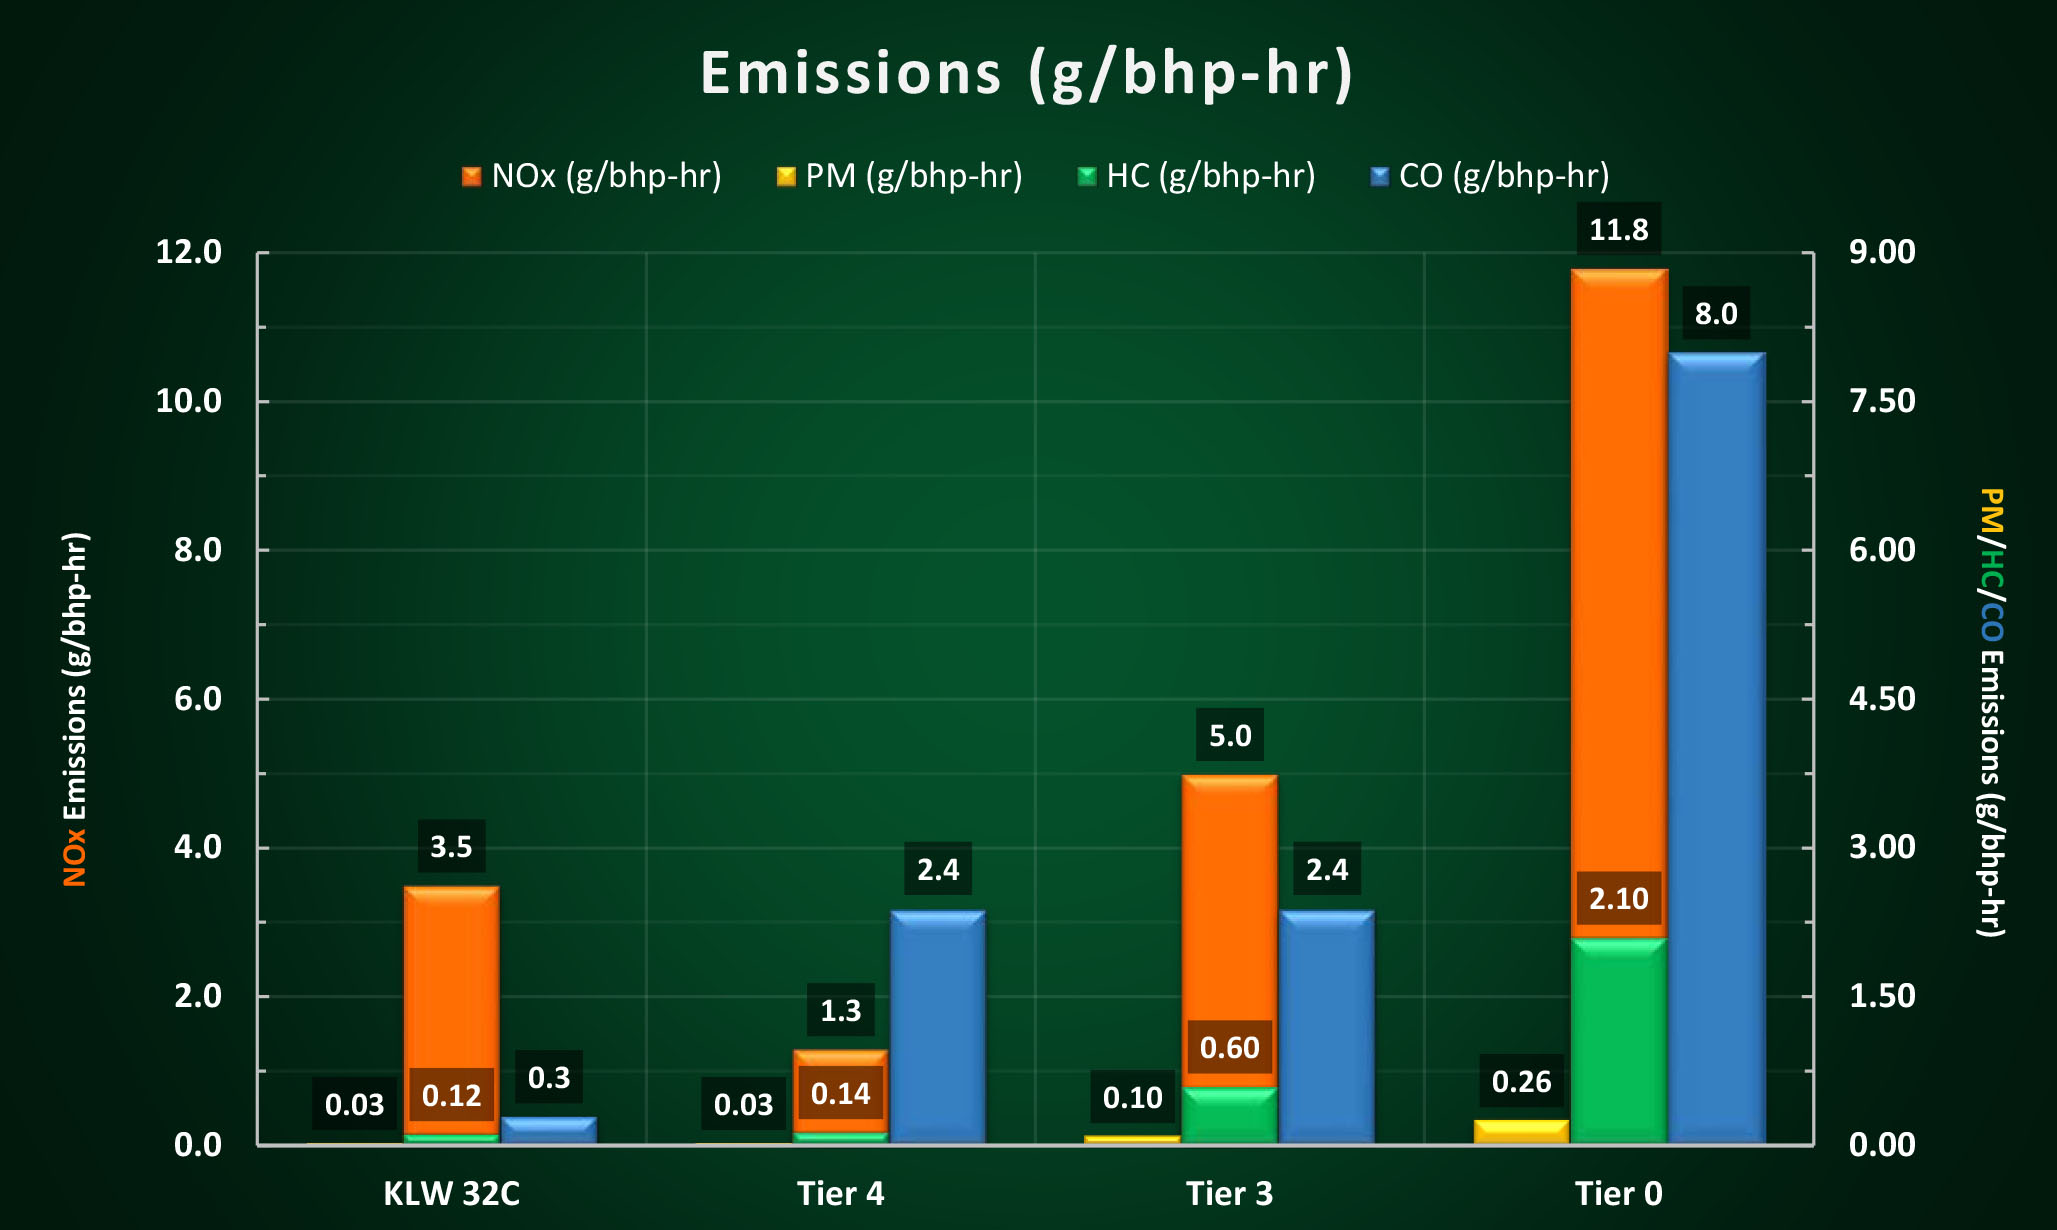 Series 4000 emissions factors for the switch duty cycle.